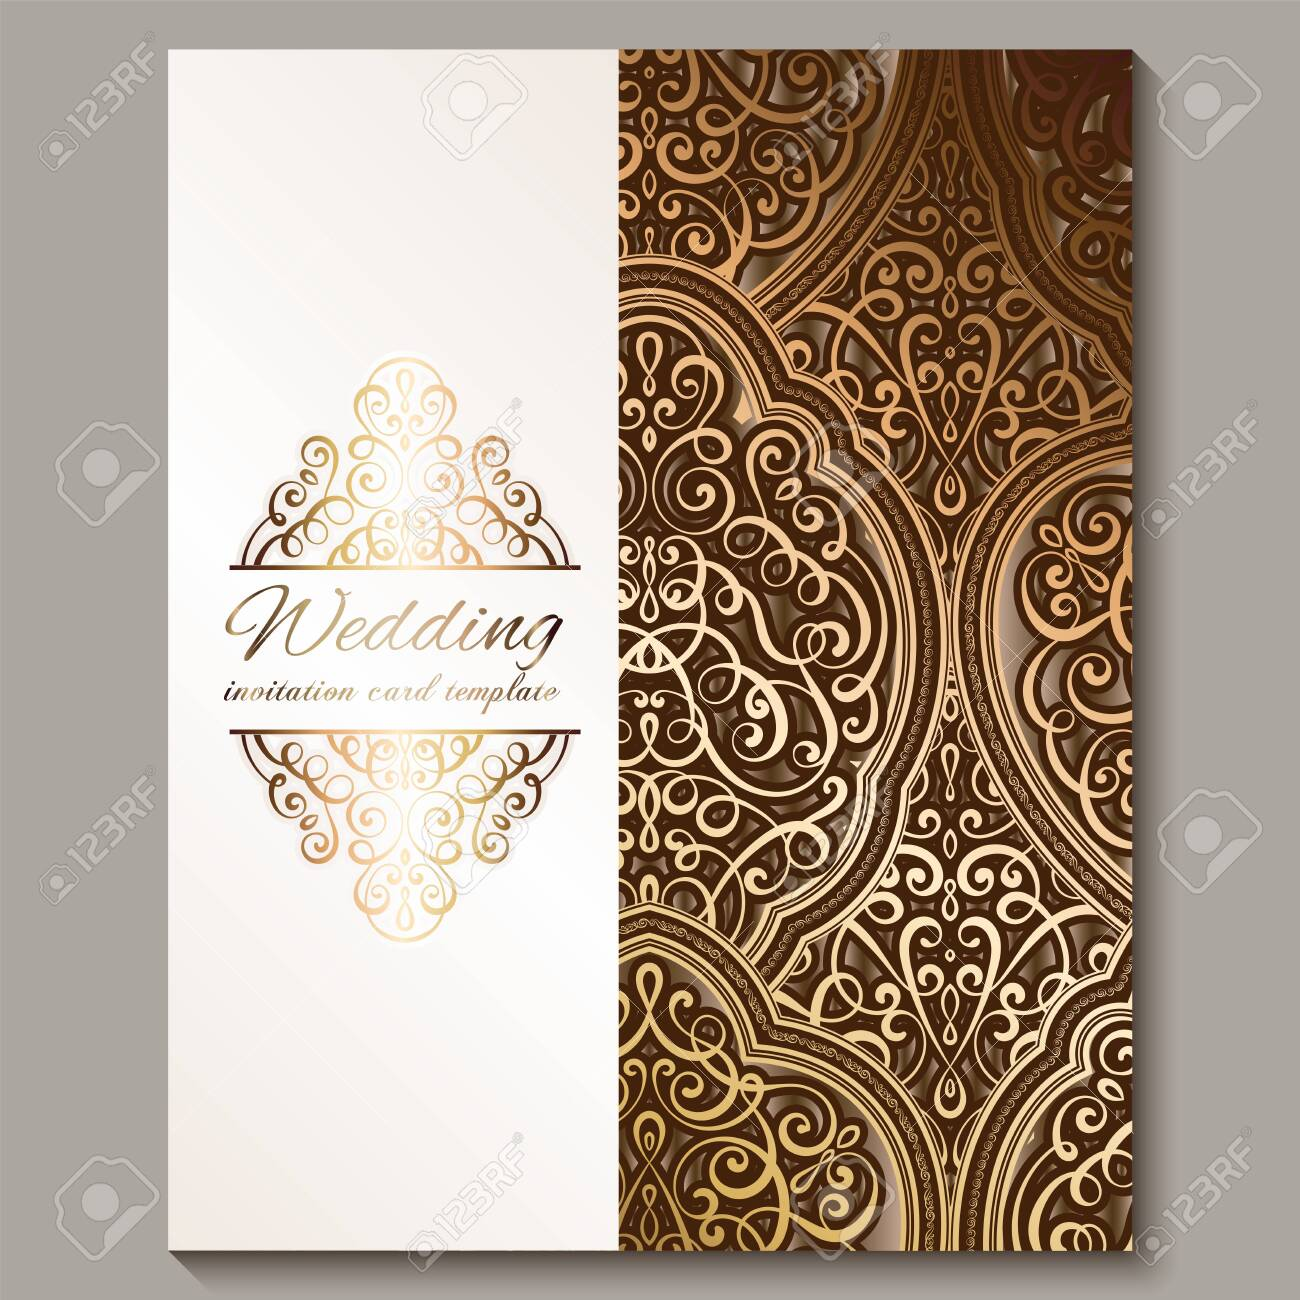 Wedding Invitation Card With Bronze And Gold Shiny Eastern And Baroque Rich Foliage Ornate Islamic Background For Your Design Islam Arabic Indian